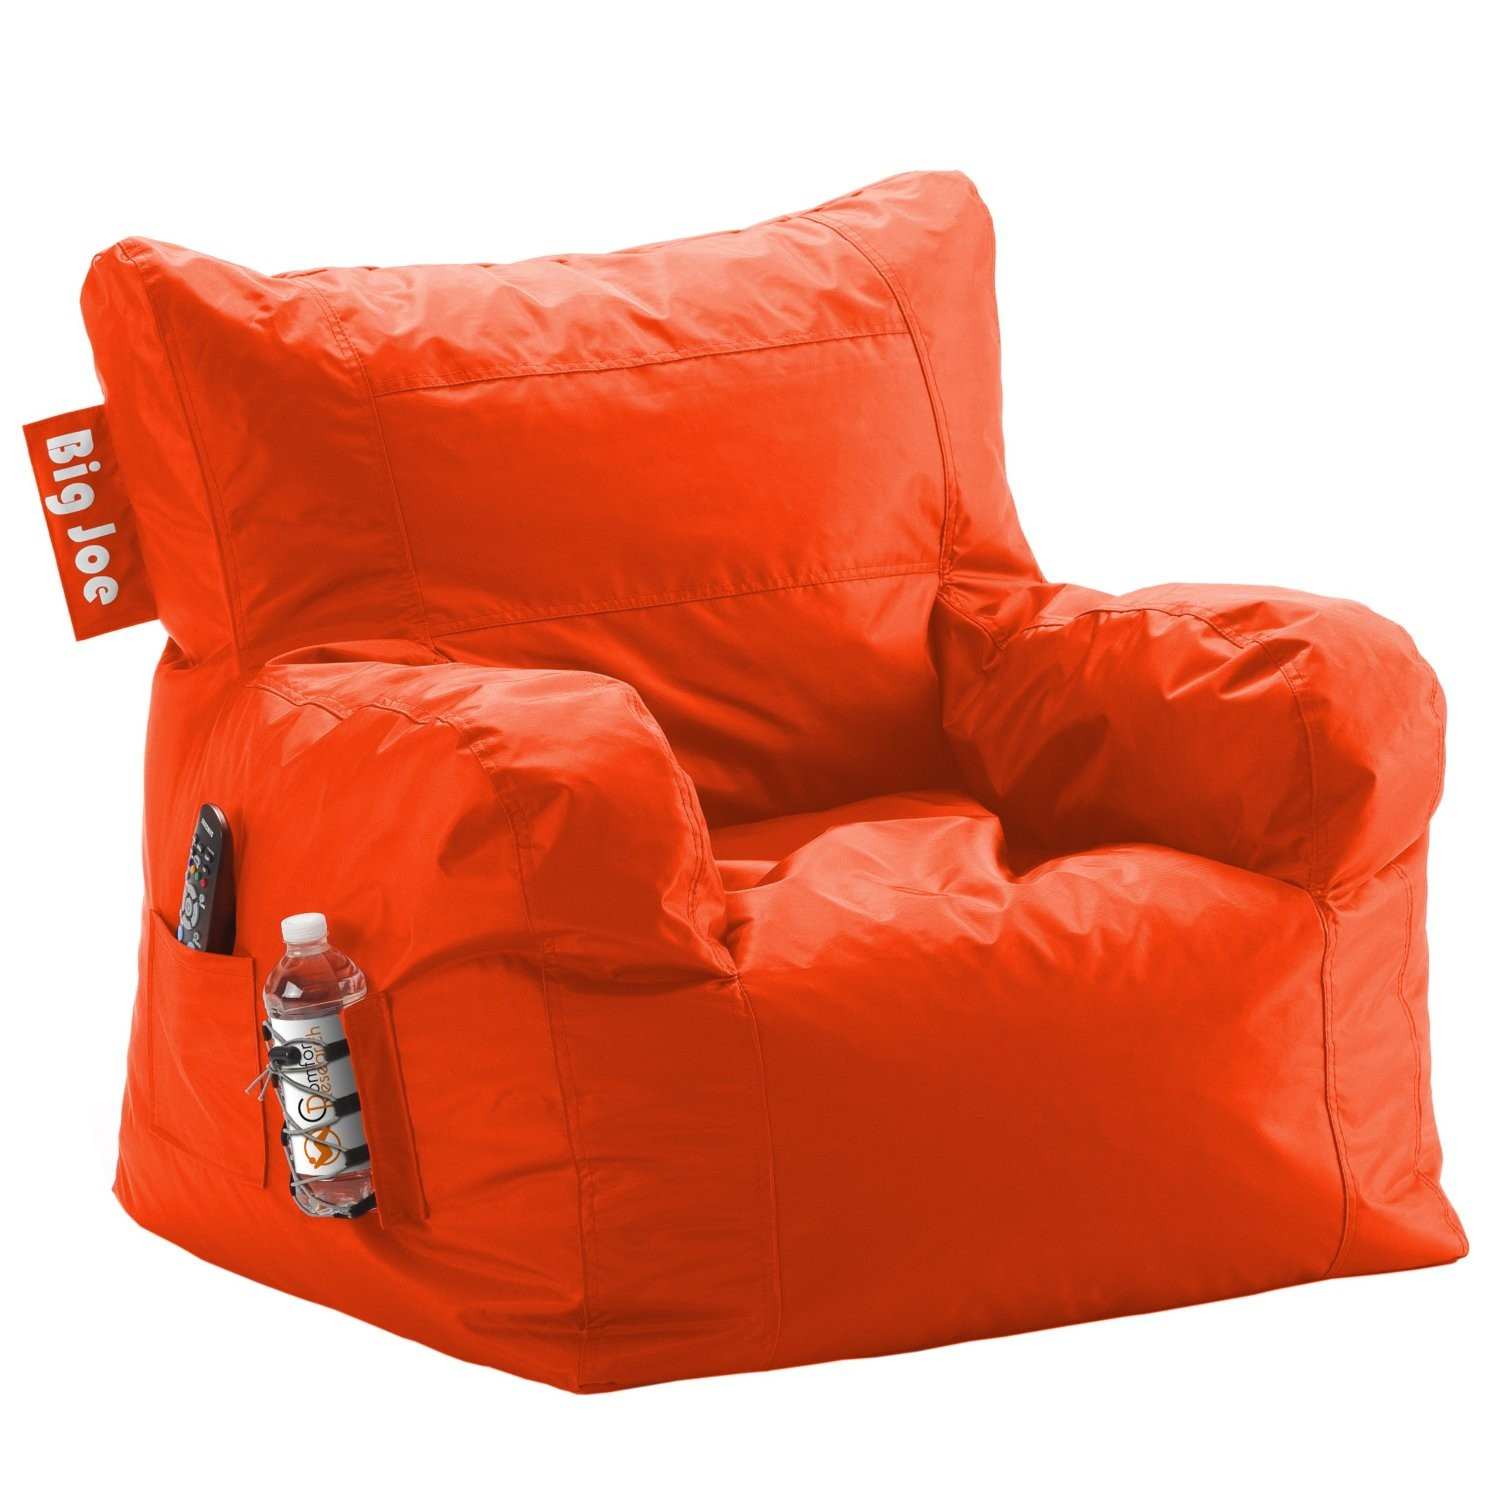 Amusing Dorm Chairs with Best Modern Design and color can be place at Living room or Bedroom Ideas